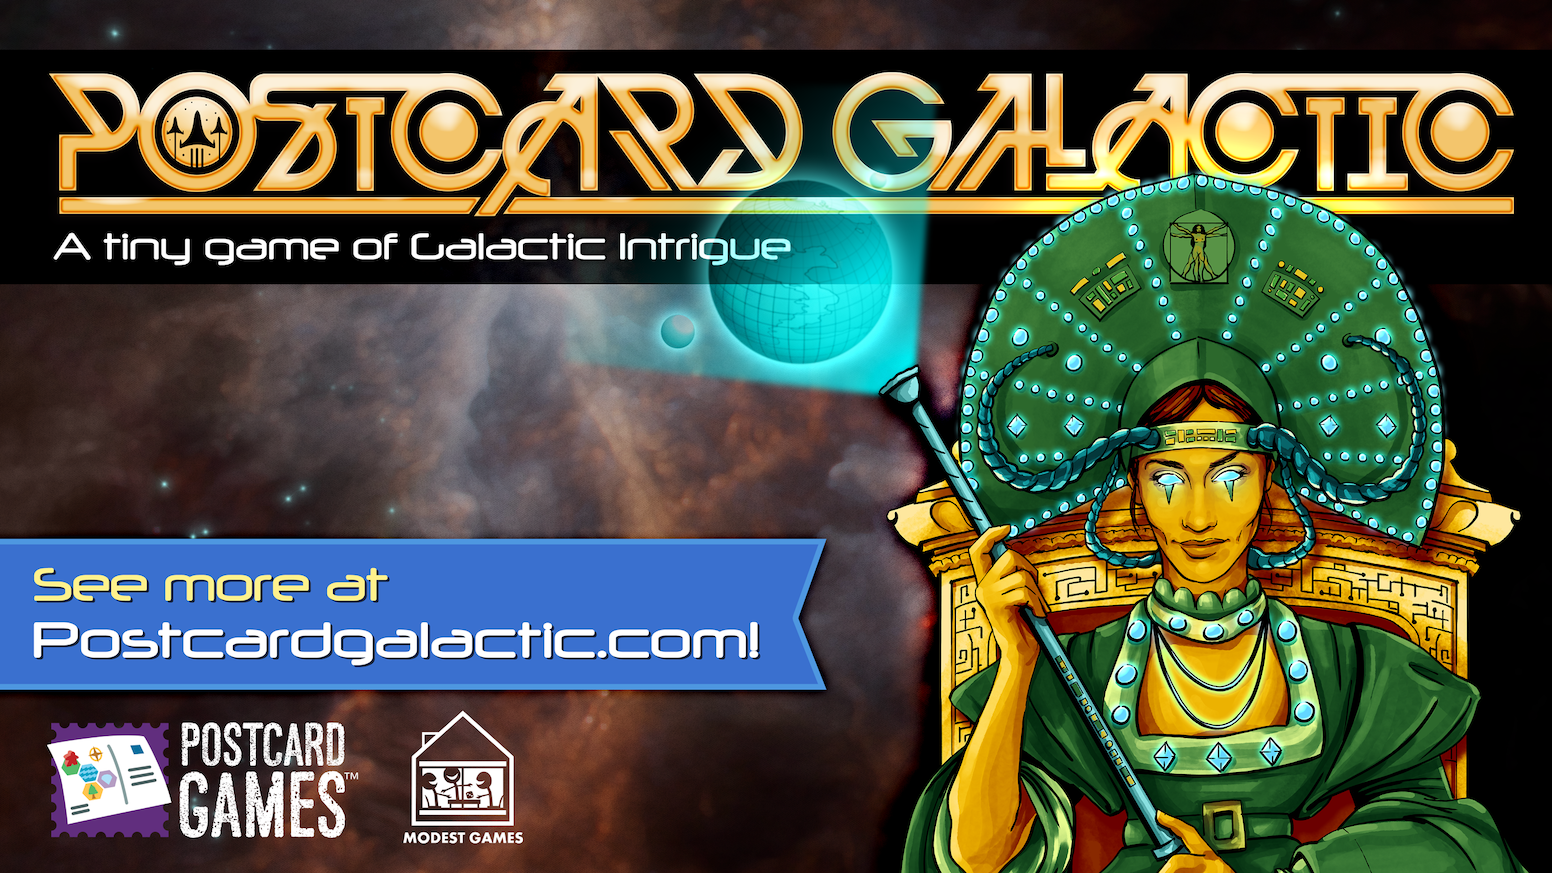 A tiny game of Galactic Intrigue. Own the most portable game of Interstellar Stratagem ever made.